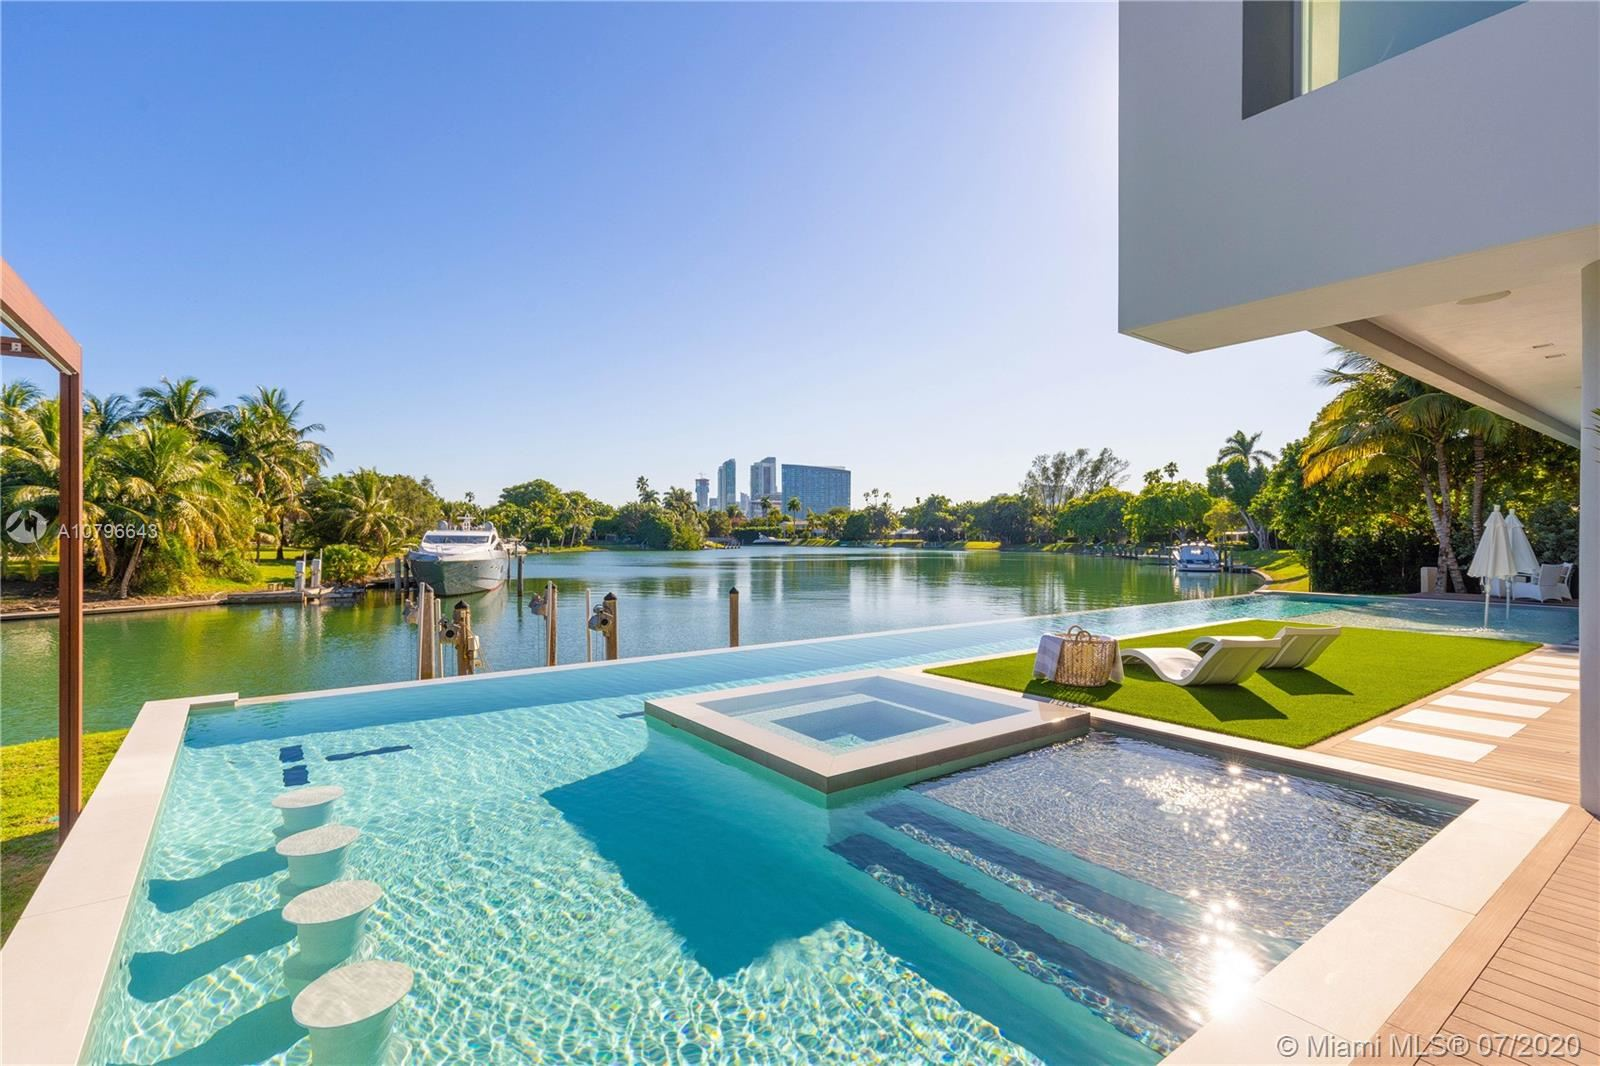 Photo 2 of Listing MLS a10796643 in 4731 Lake Rd Miami FL 33137